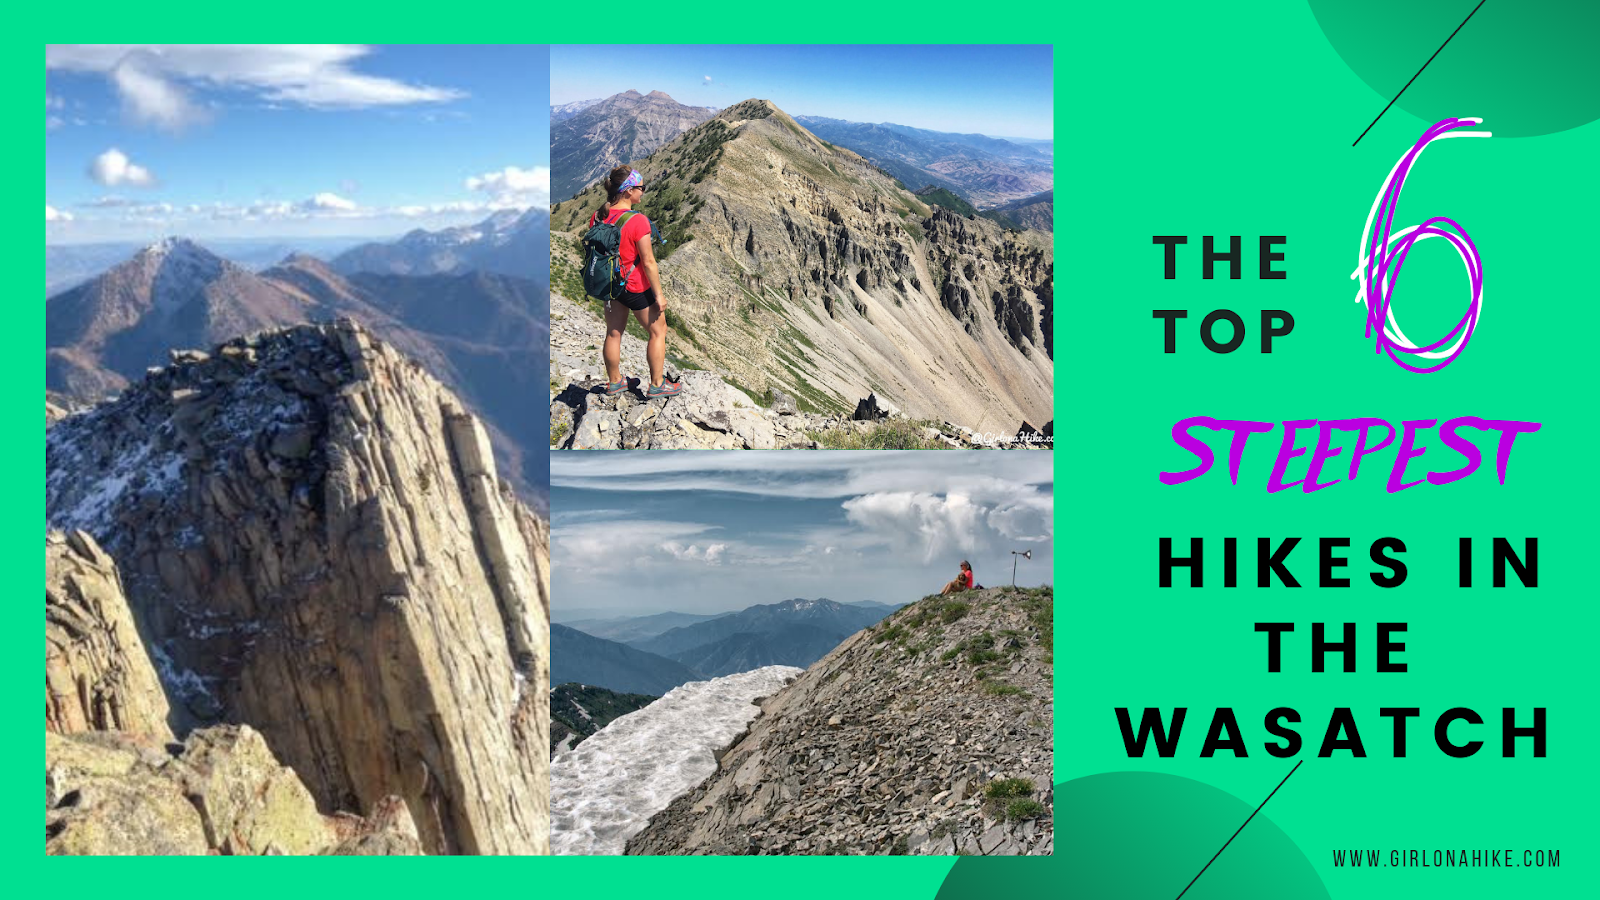 The 6 Steepest Hikes in the Wasatch